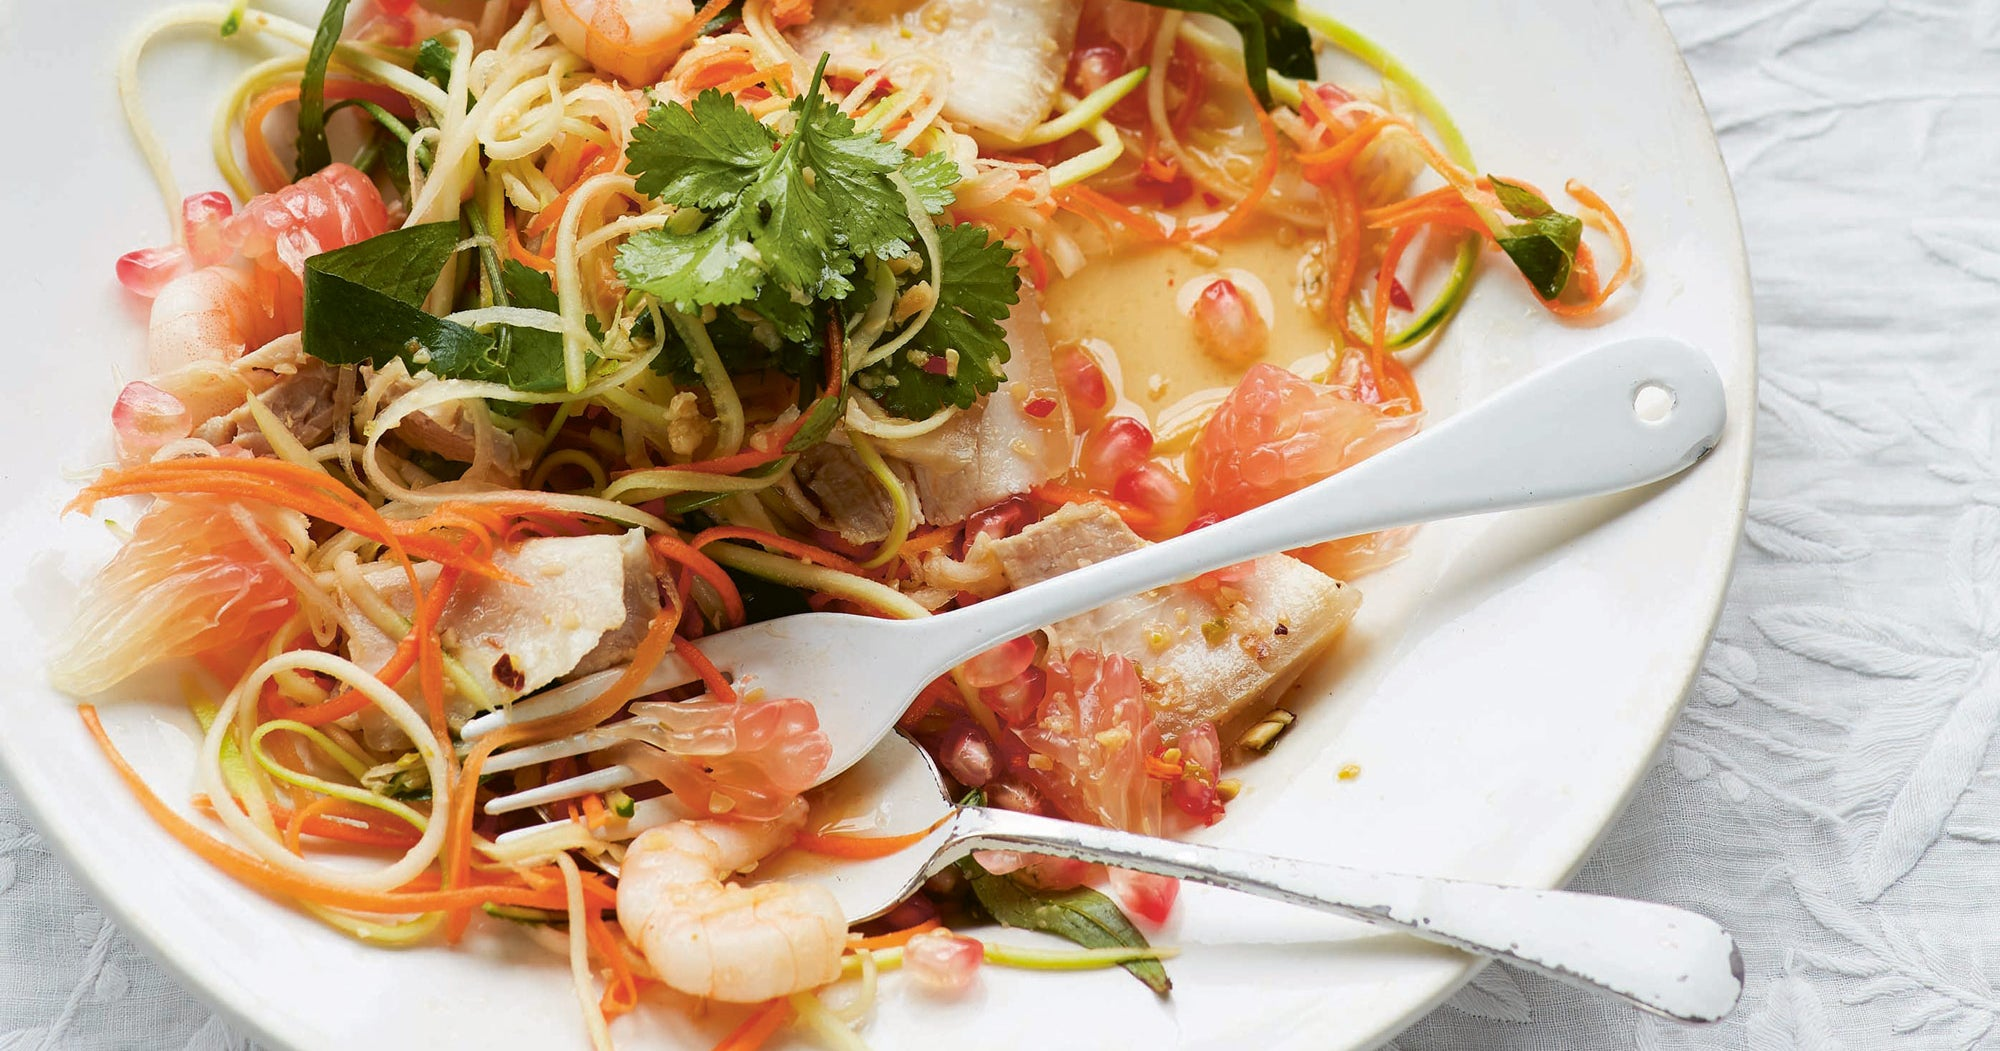 3 Vibrant Vietnamese Salads To Brighten Up Your Lunches